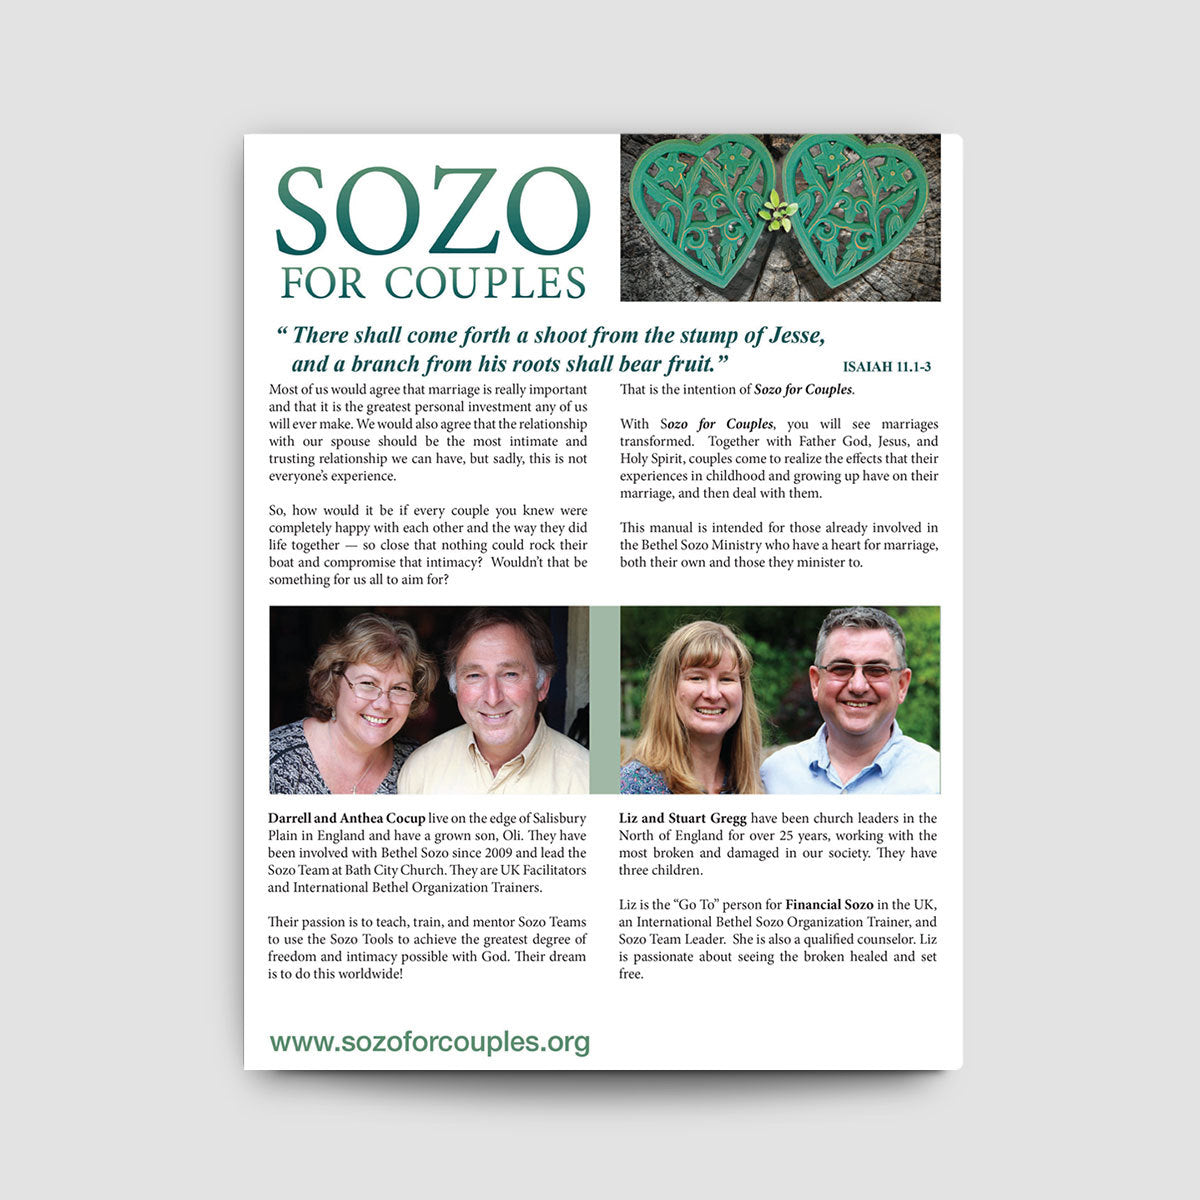 Sozo for Couples Manual